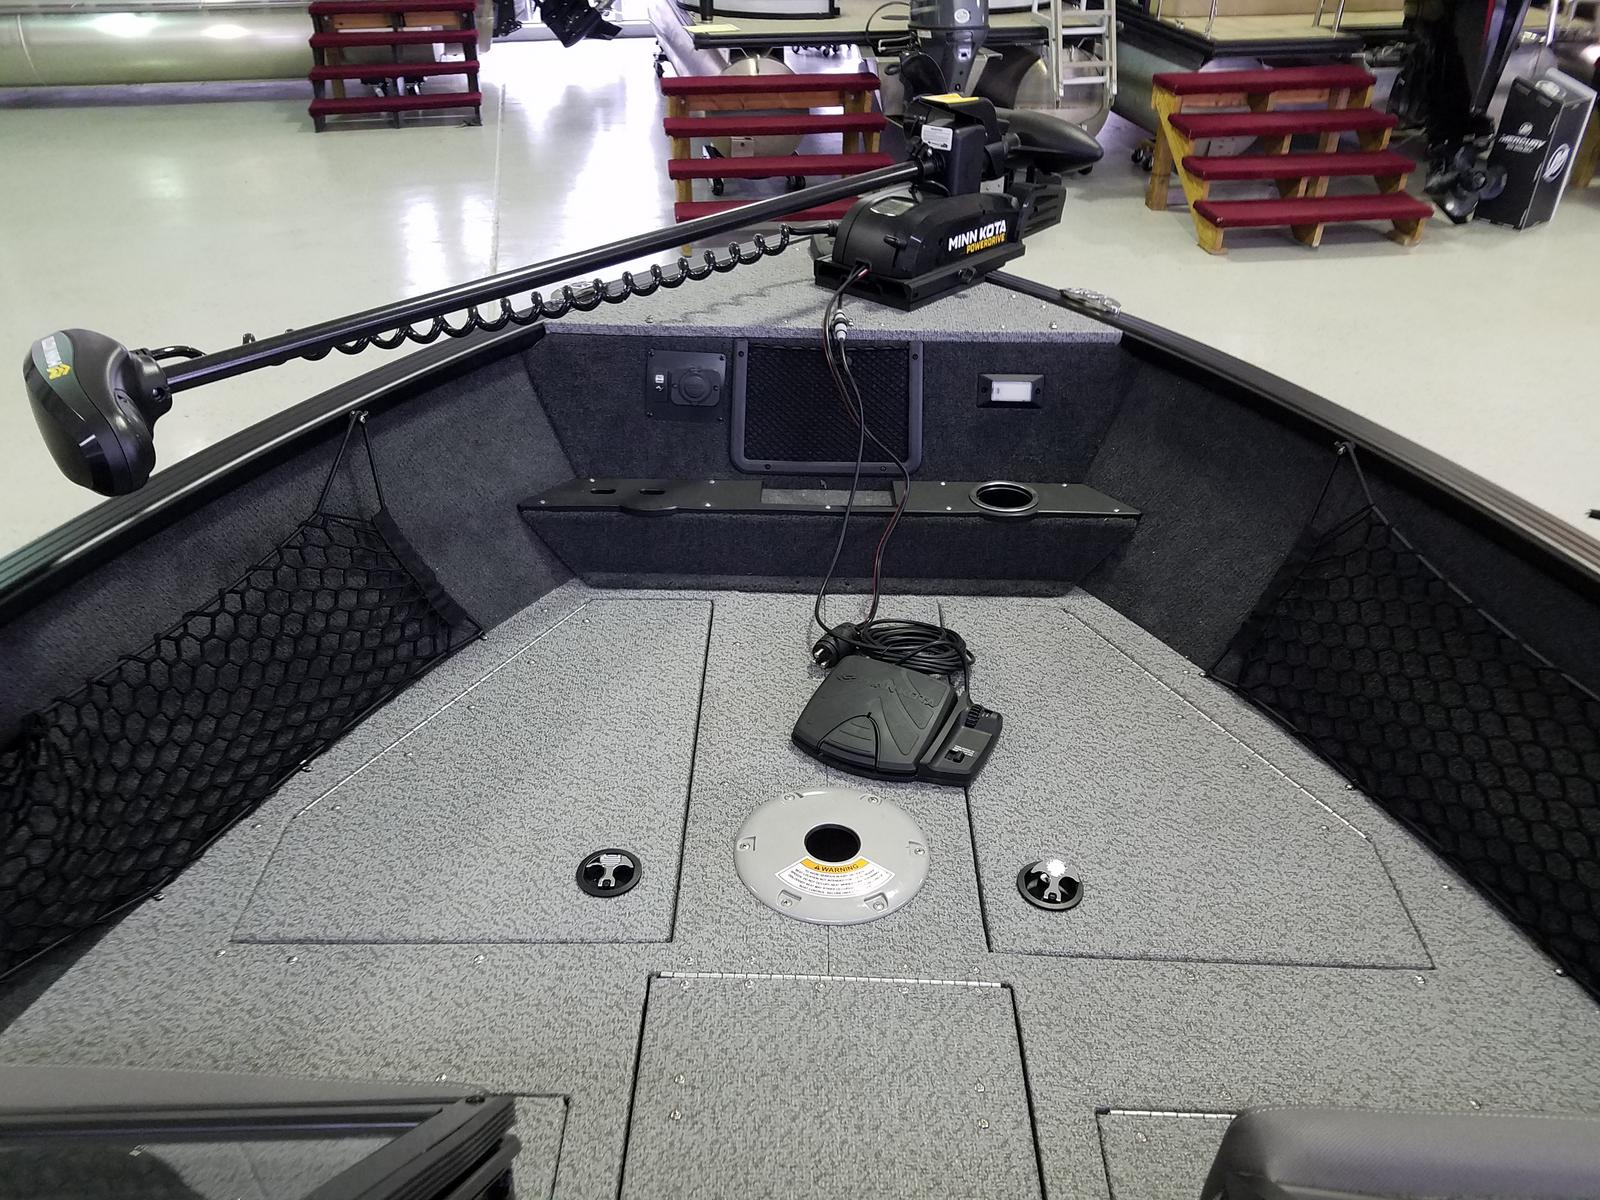 2021 Starweld boat for sale, model of the boat is Flex Pro 17 DC & Image # 5 of 7